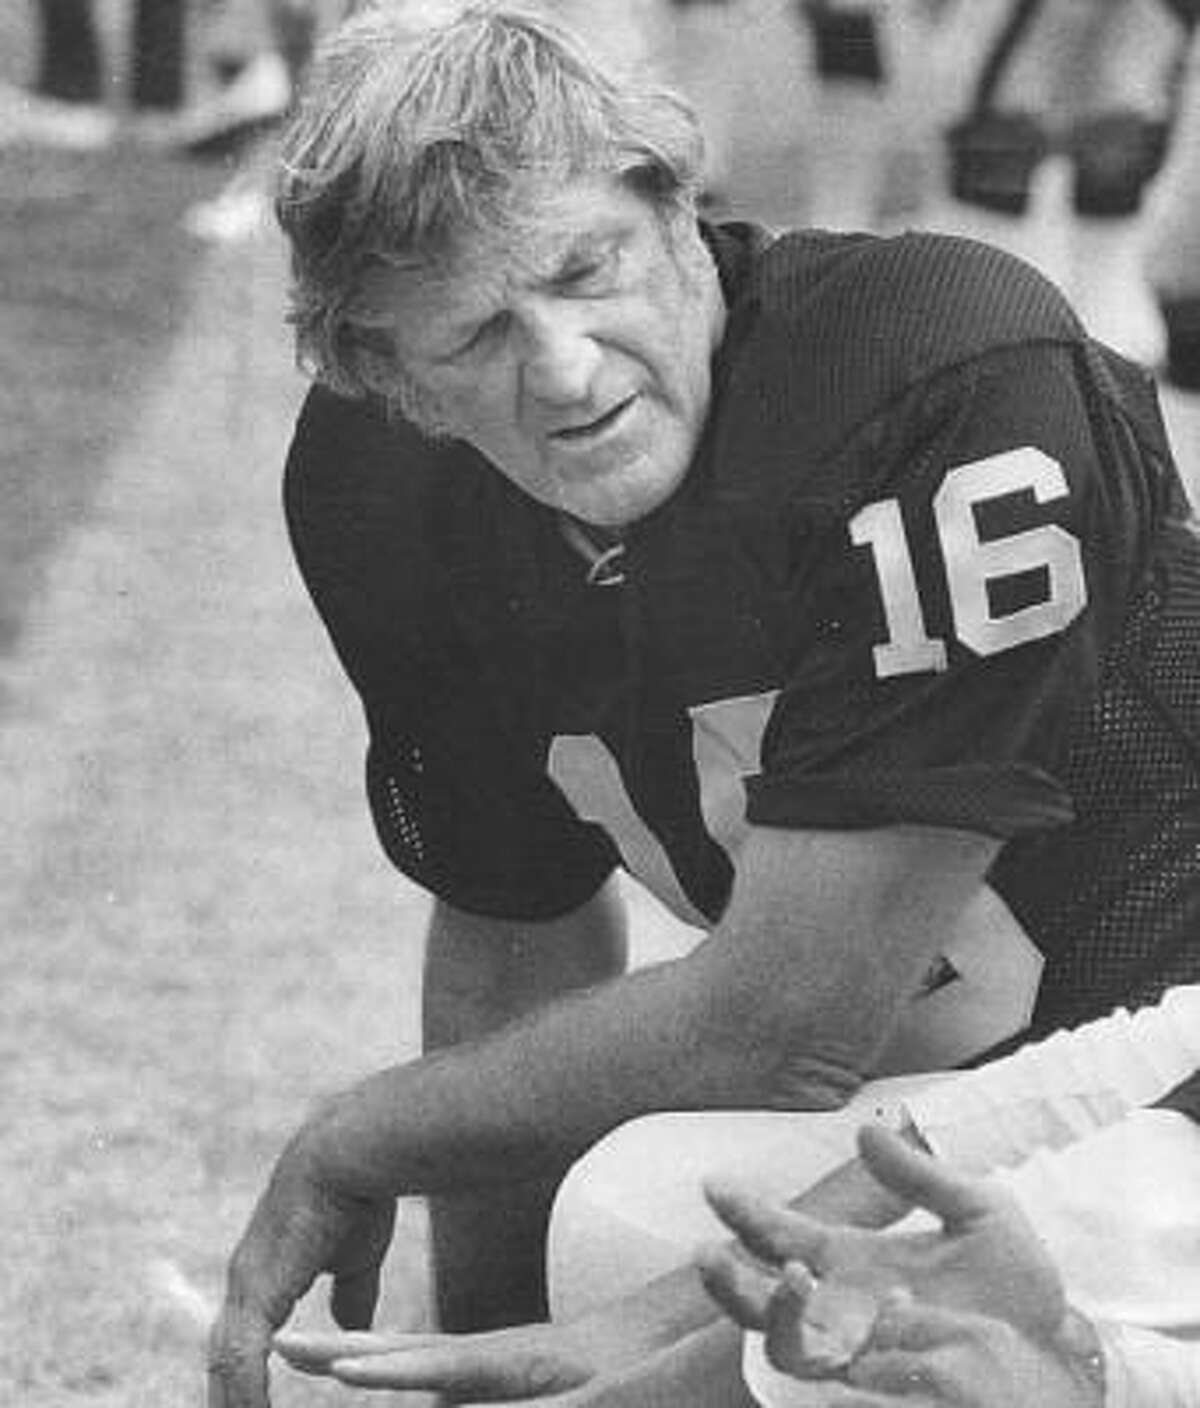 Hall of Famer George Blanda, the grizzled, often acerbic leader of the Houston Oilers teams that dominated the early American Football League, died Monday, Sept. 27, after a brief illness. He was 83.